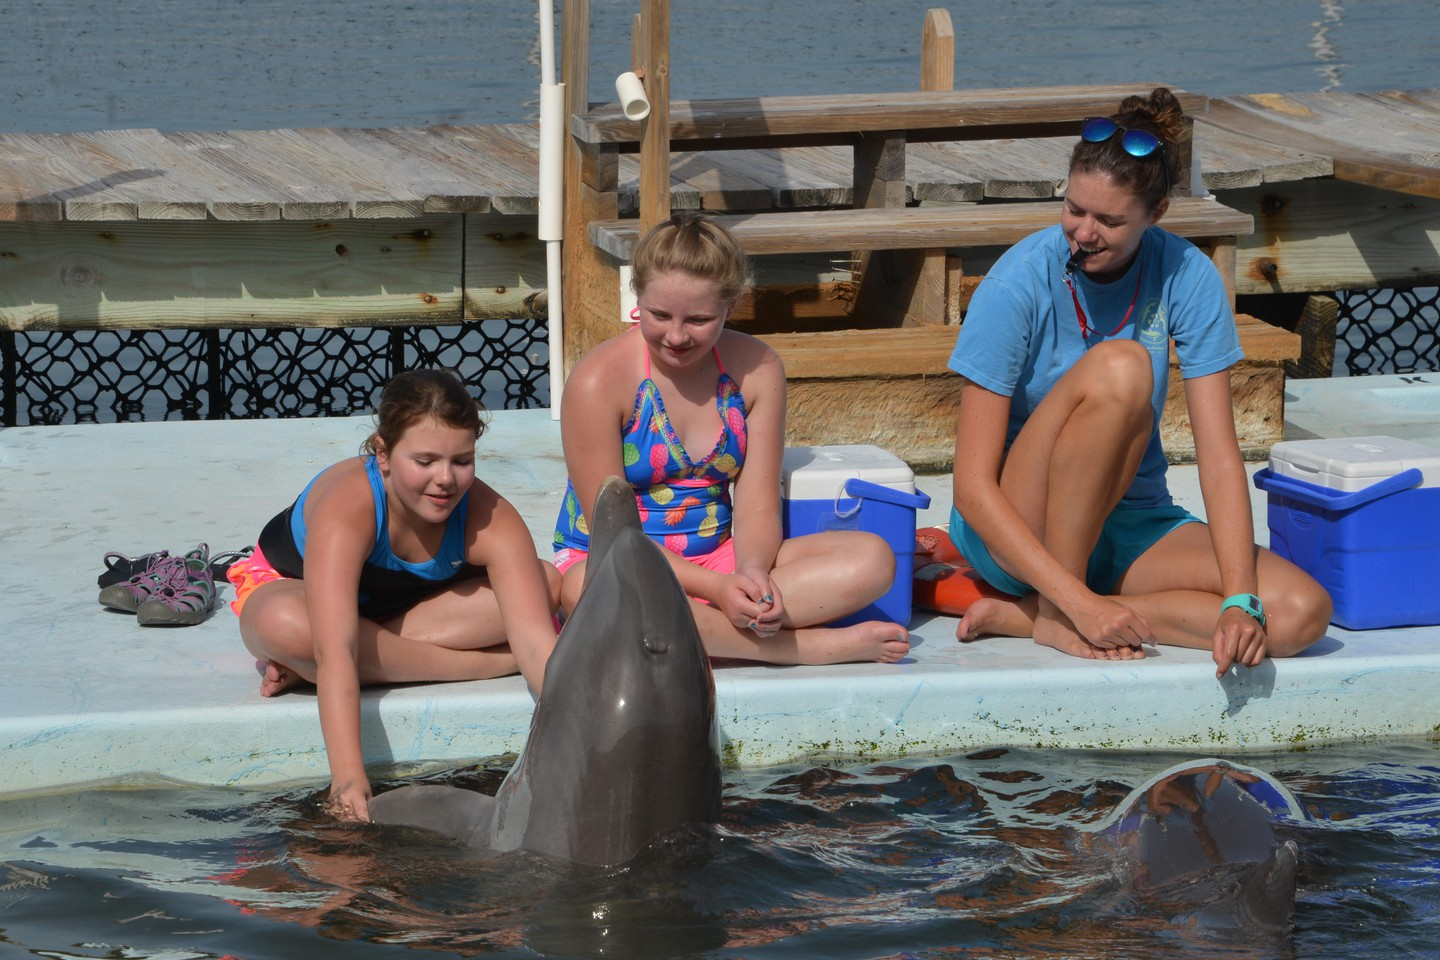 Participants in the dolphin trainer program at the Dolphin Research Center in Grassy Key Florida USA